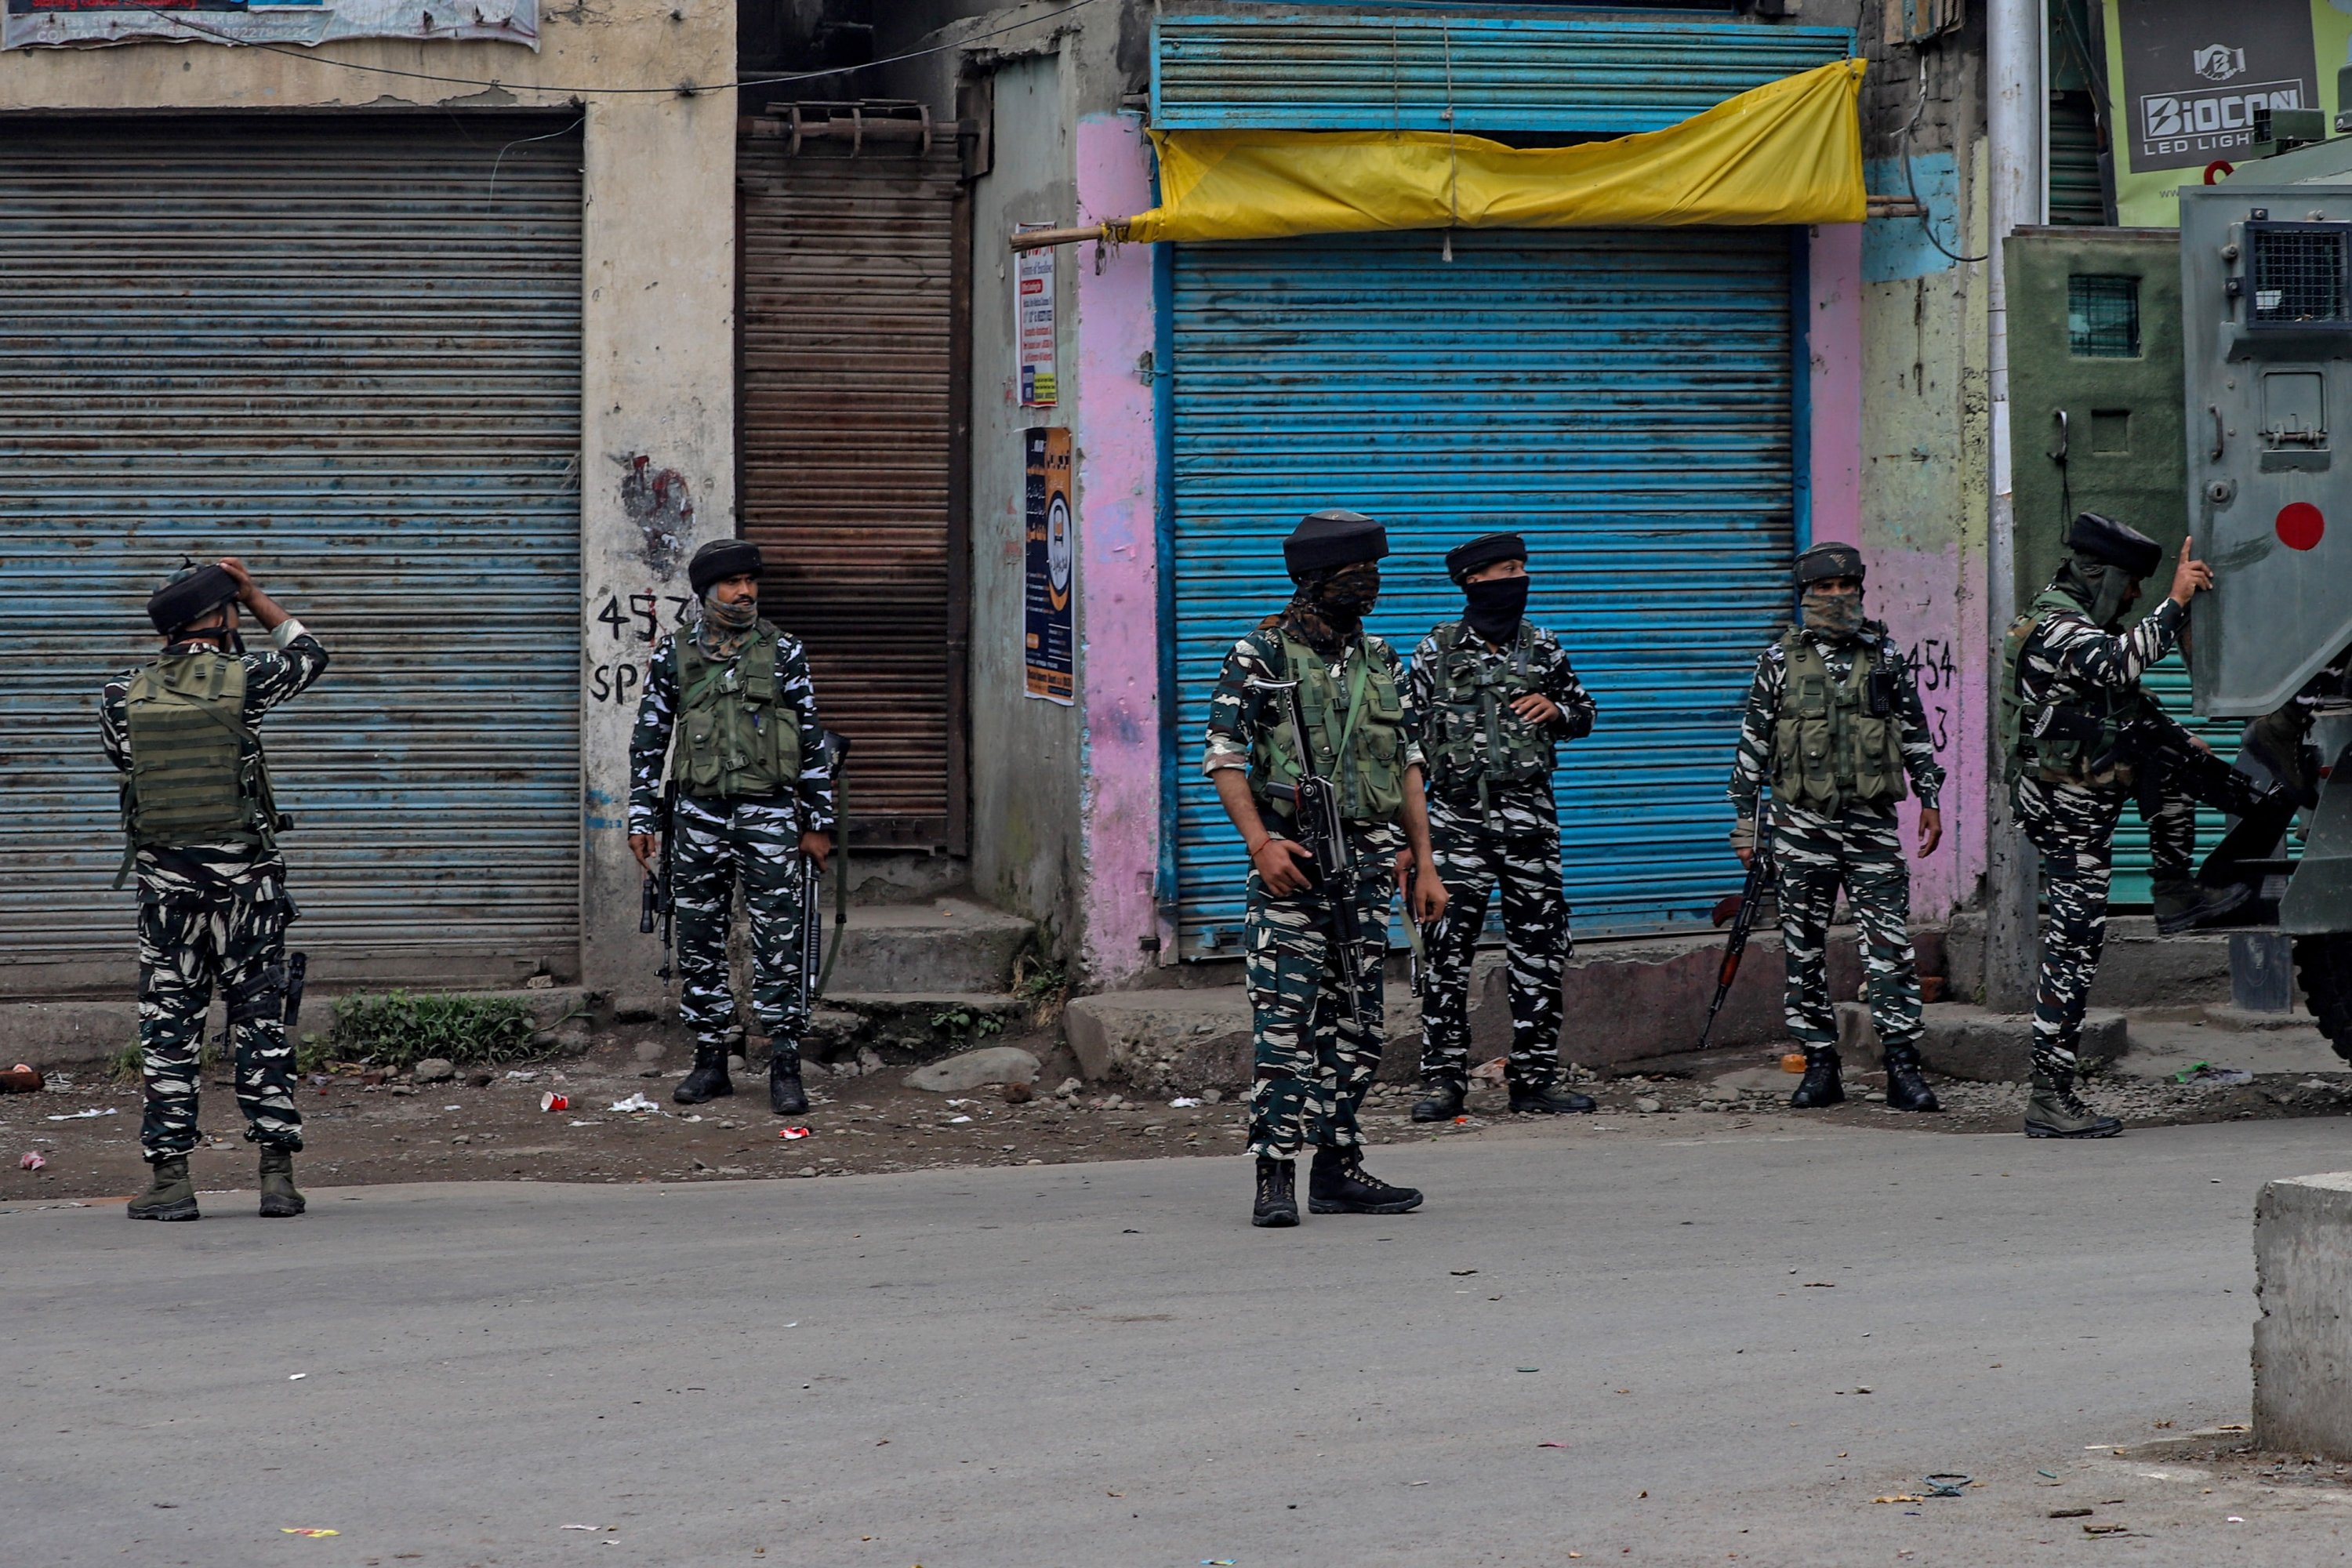 Indian security personnel during an encounter with militants at new colony in Pulwama district, Indian-controlled Kashmir, July 13, 2021. (Photo by Getty Images)